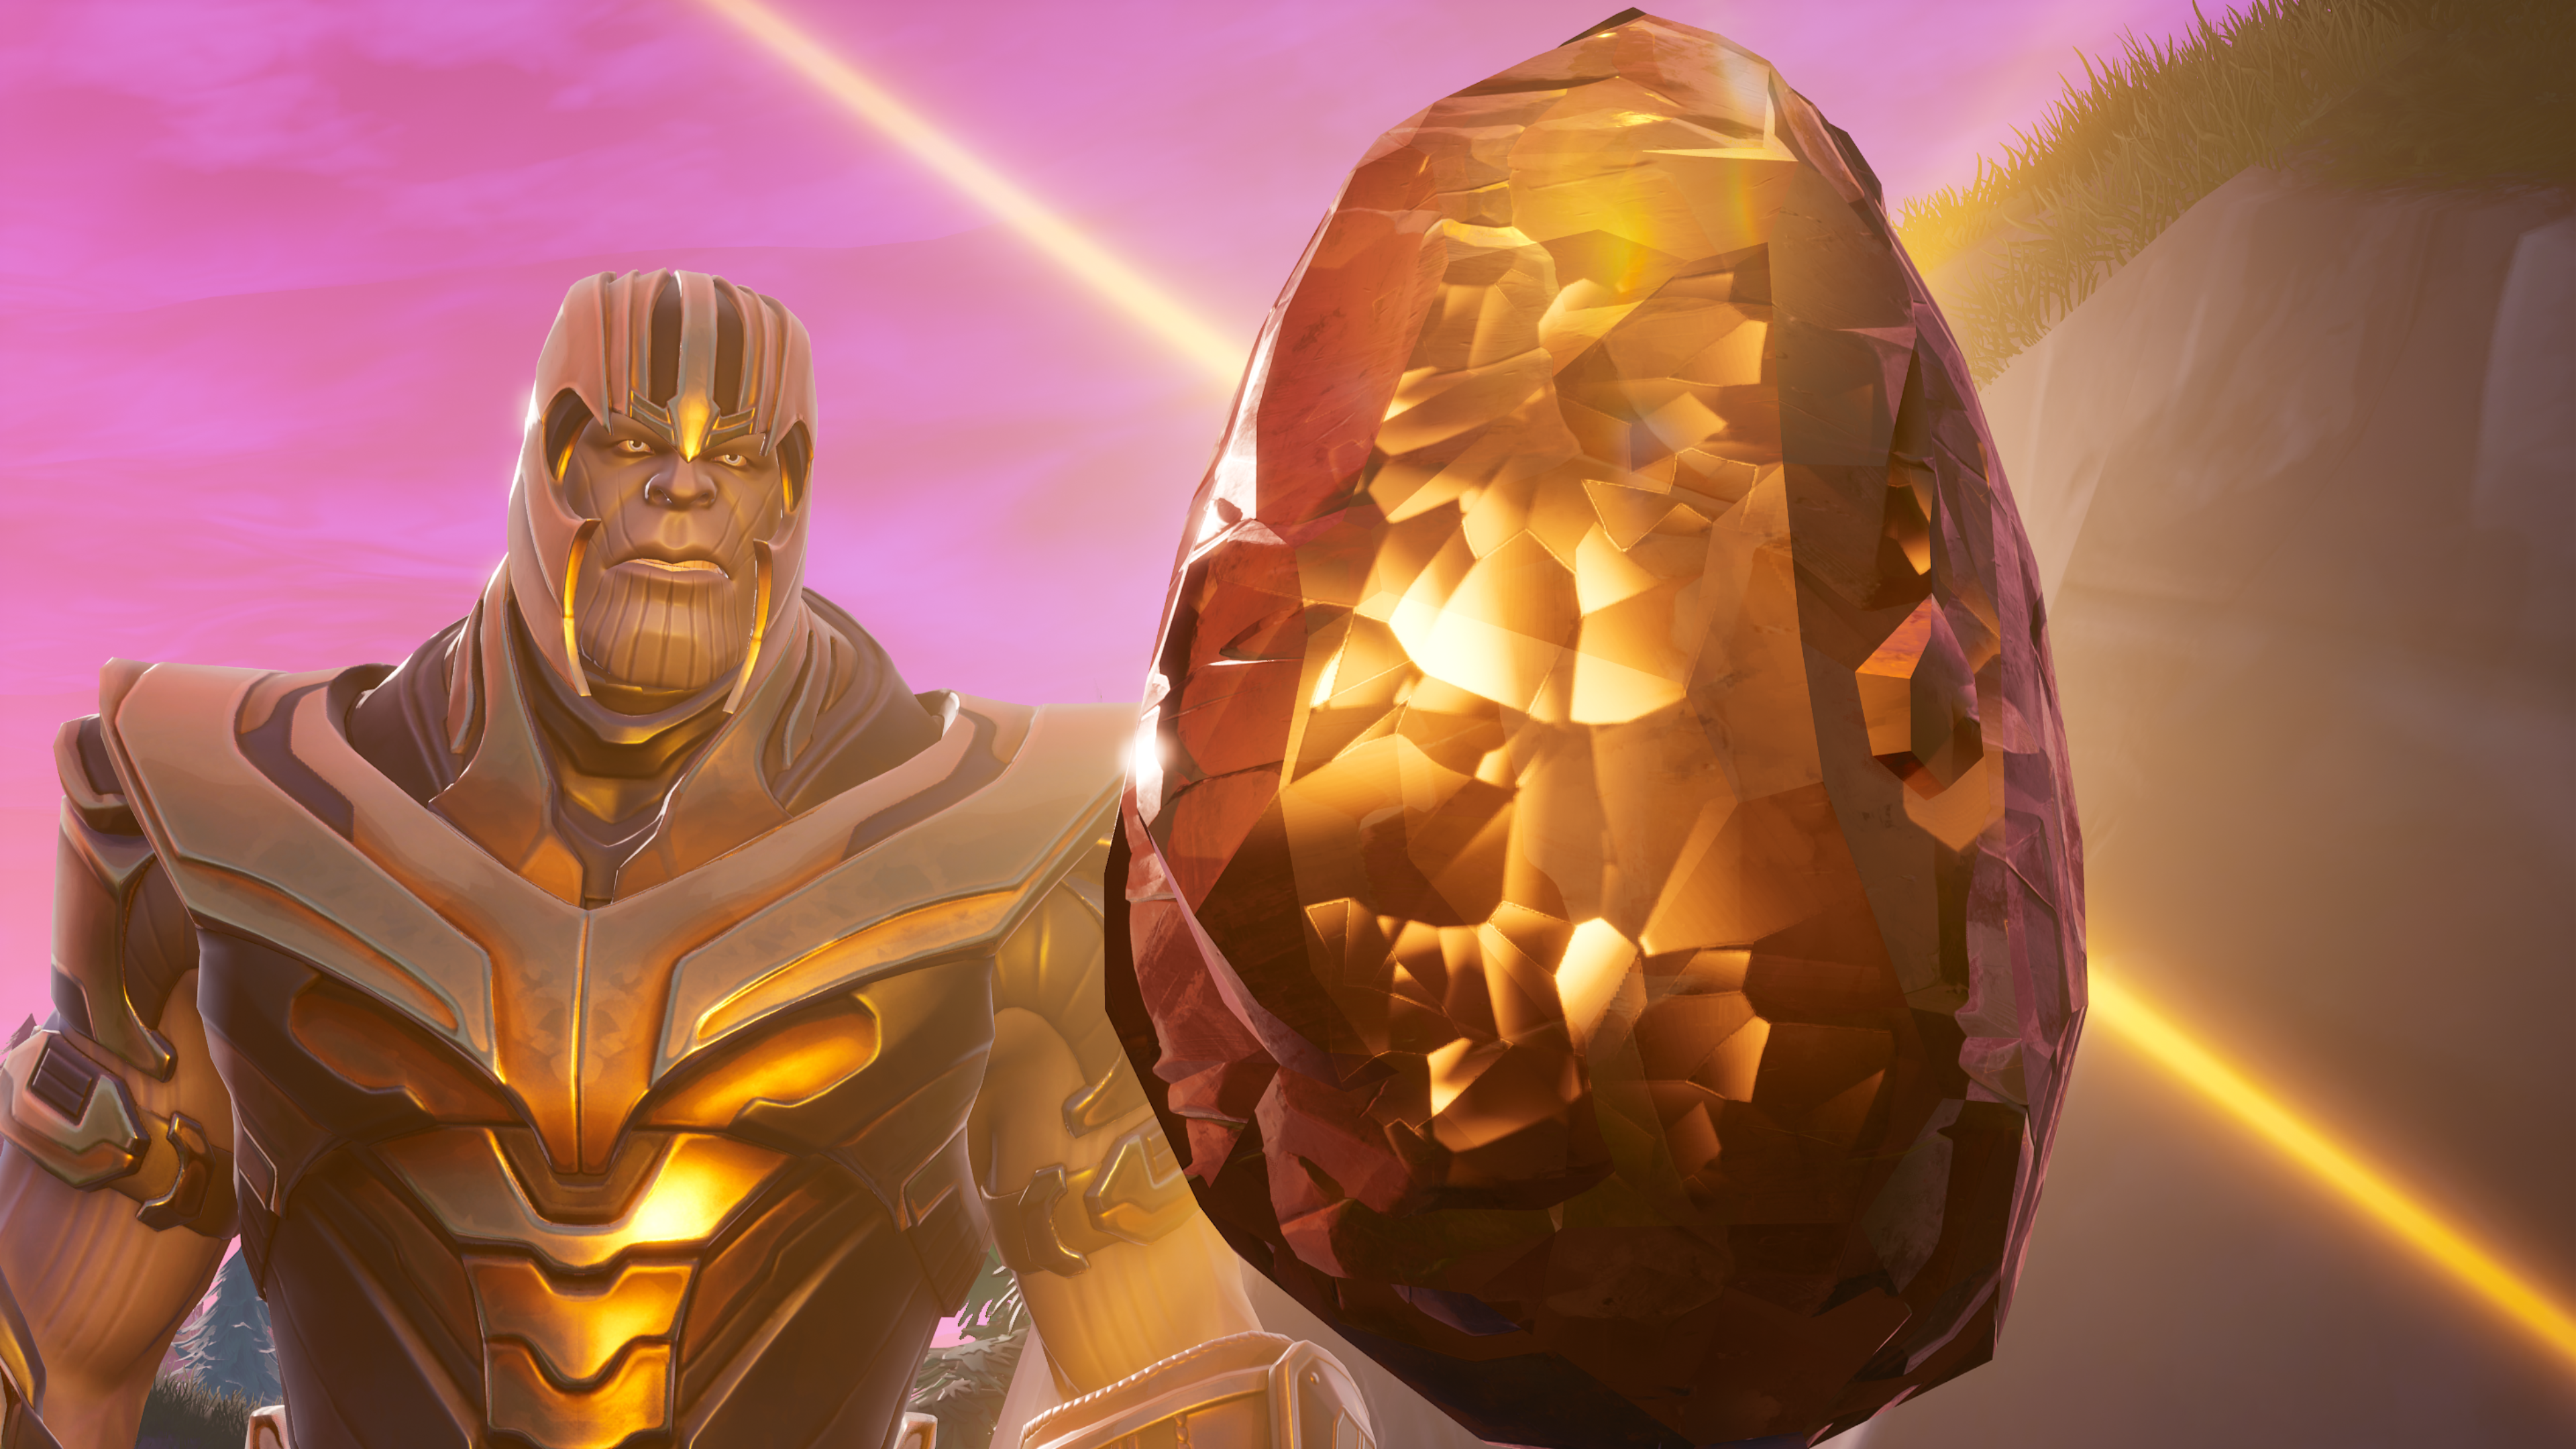 Fortnite Thanos Wallpapers Top Free Fortnite Thanos Backgrounds Wallpaperaccess